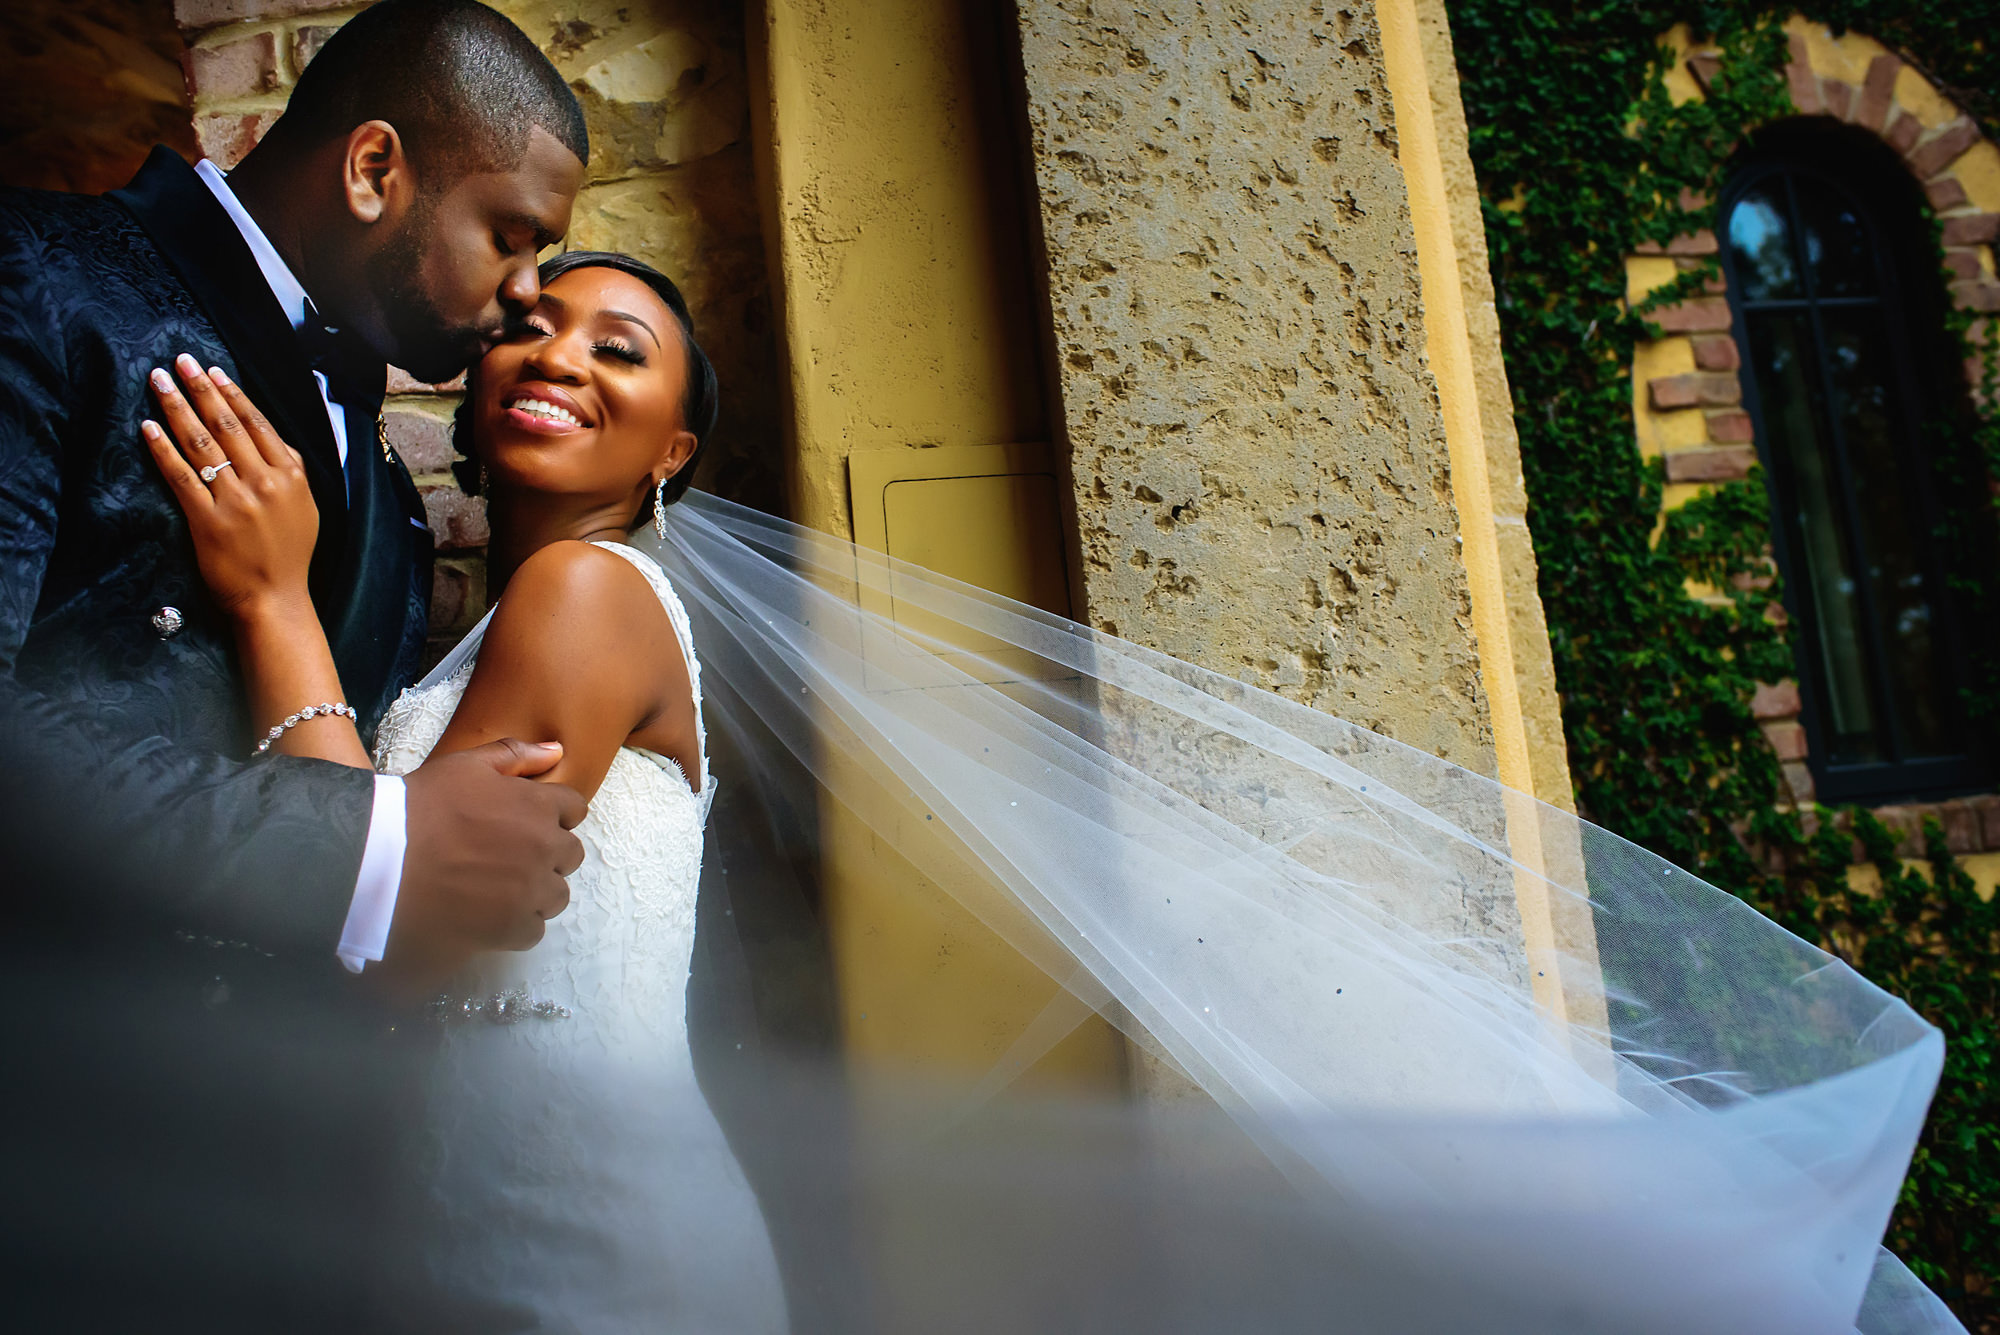 Groom kisses bride in swirling veil - photo by Alakija Studios